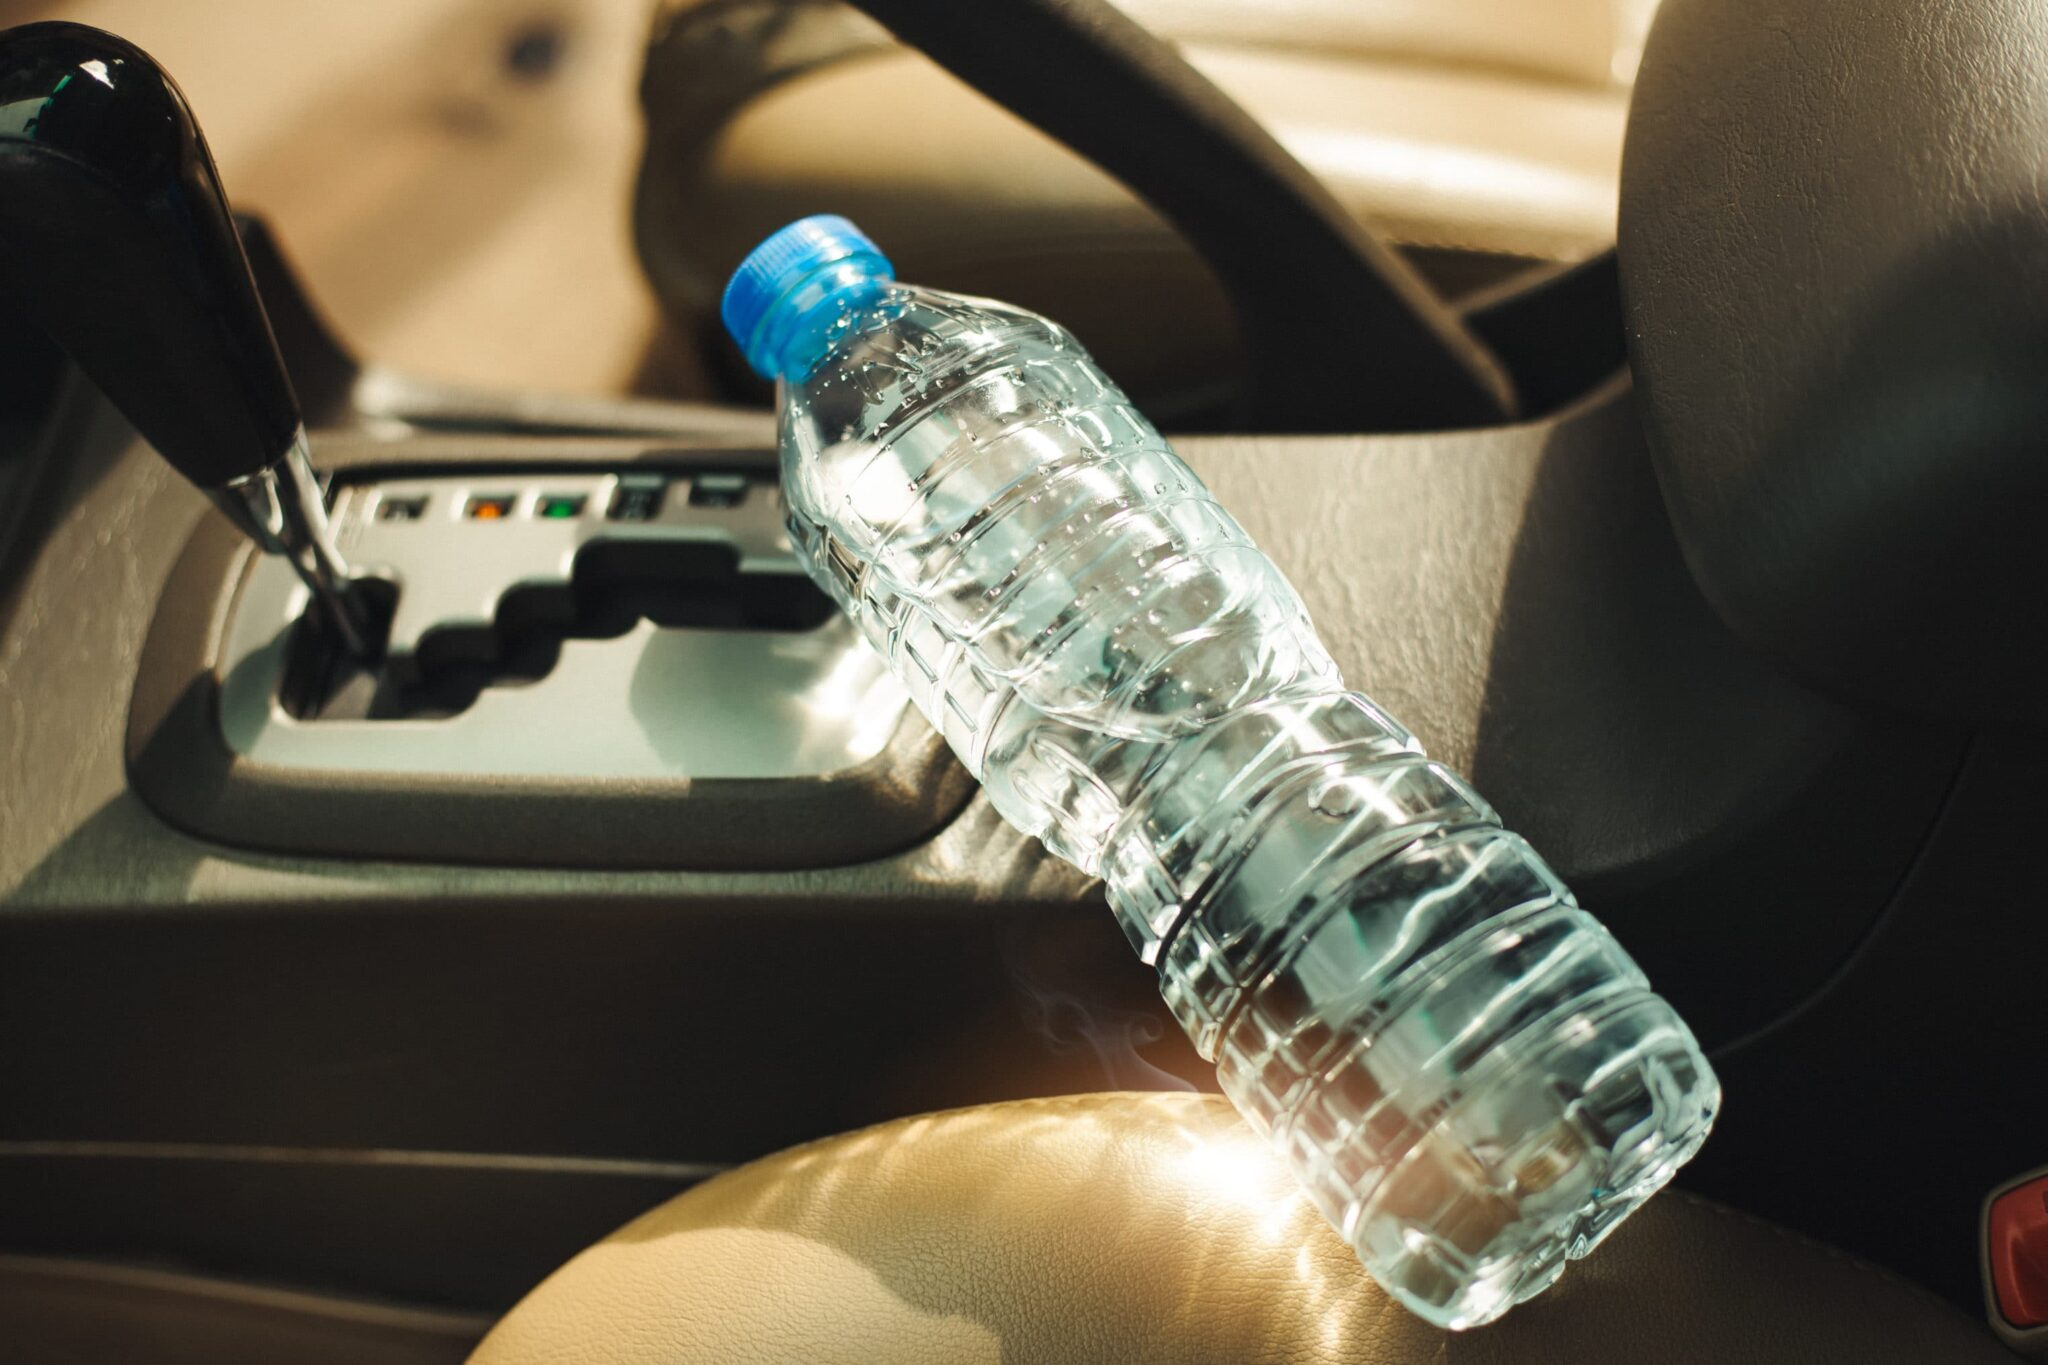 plastic water bottle sits on the gear stick in the car in the sunlight